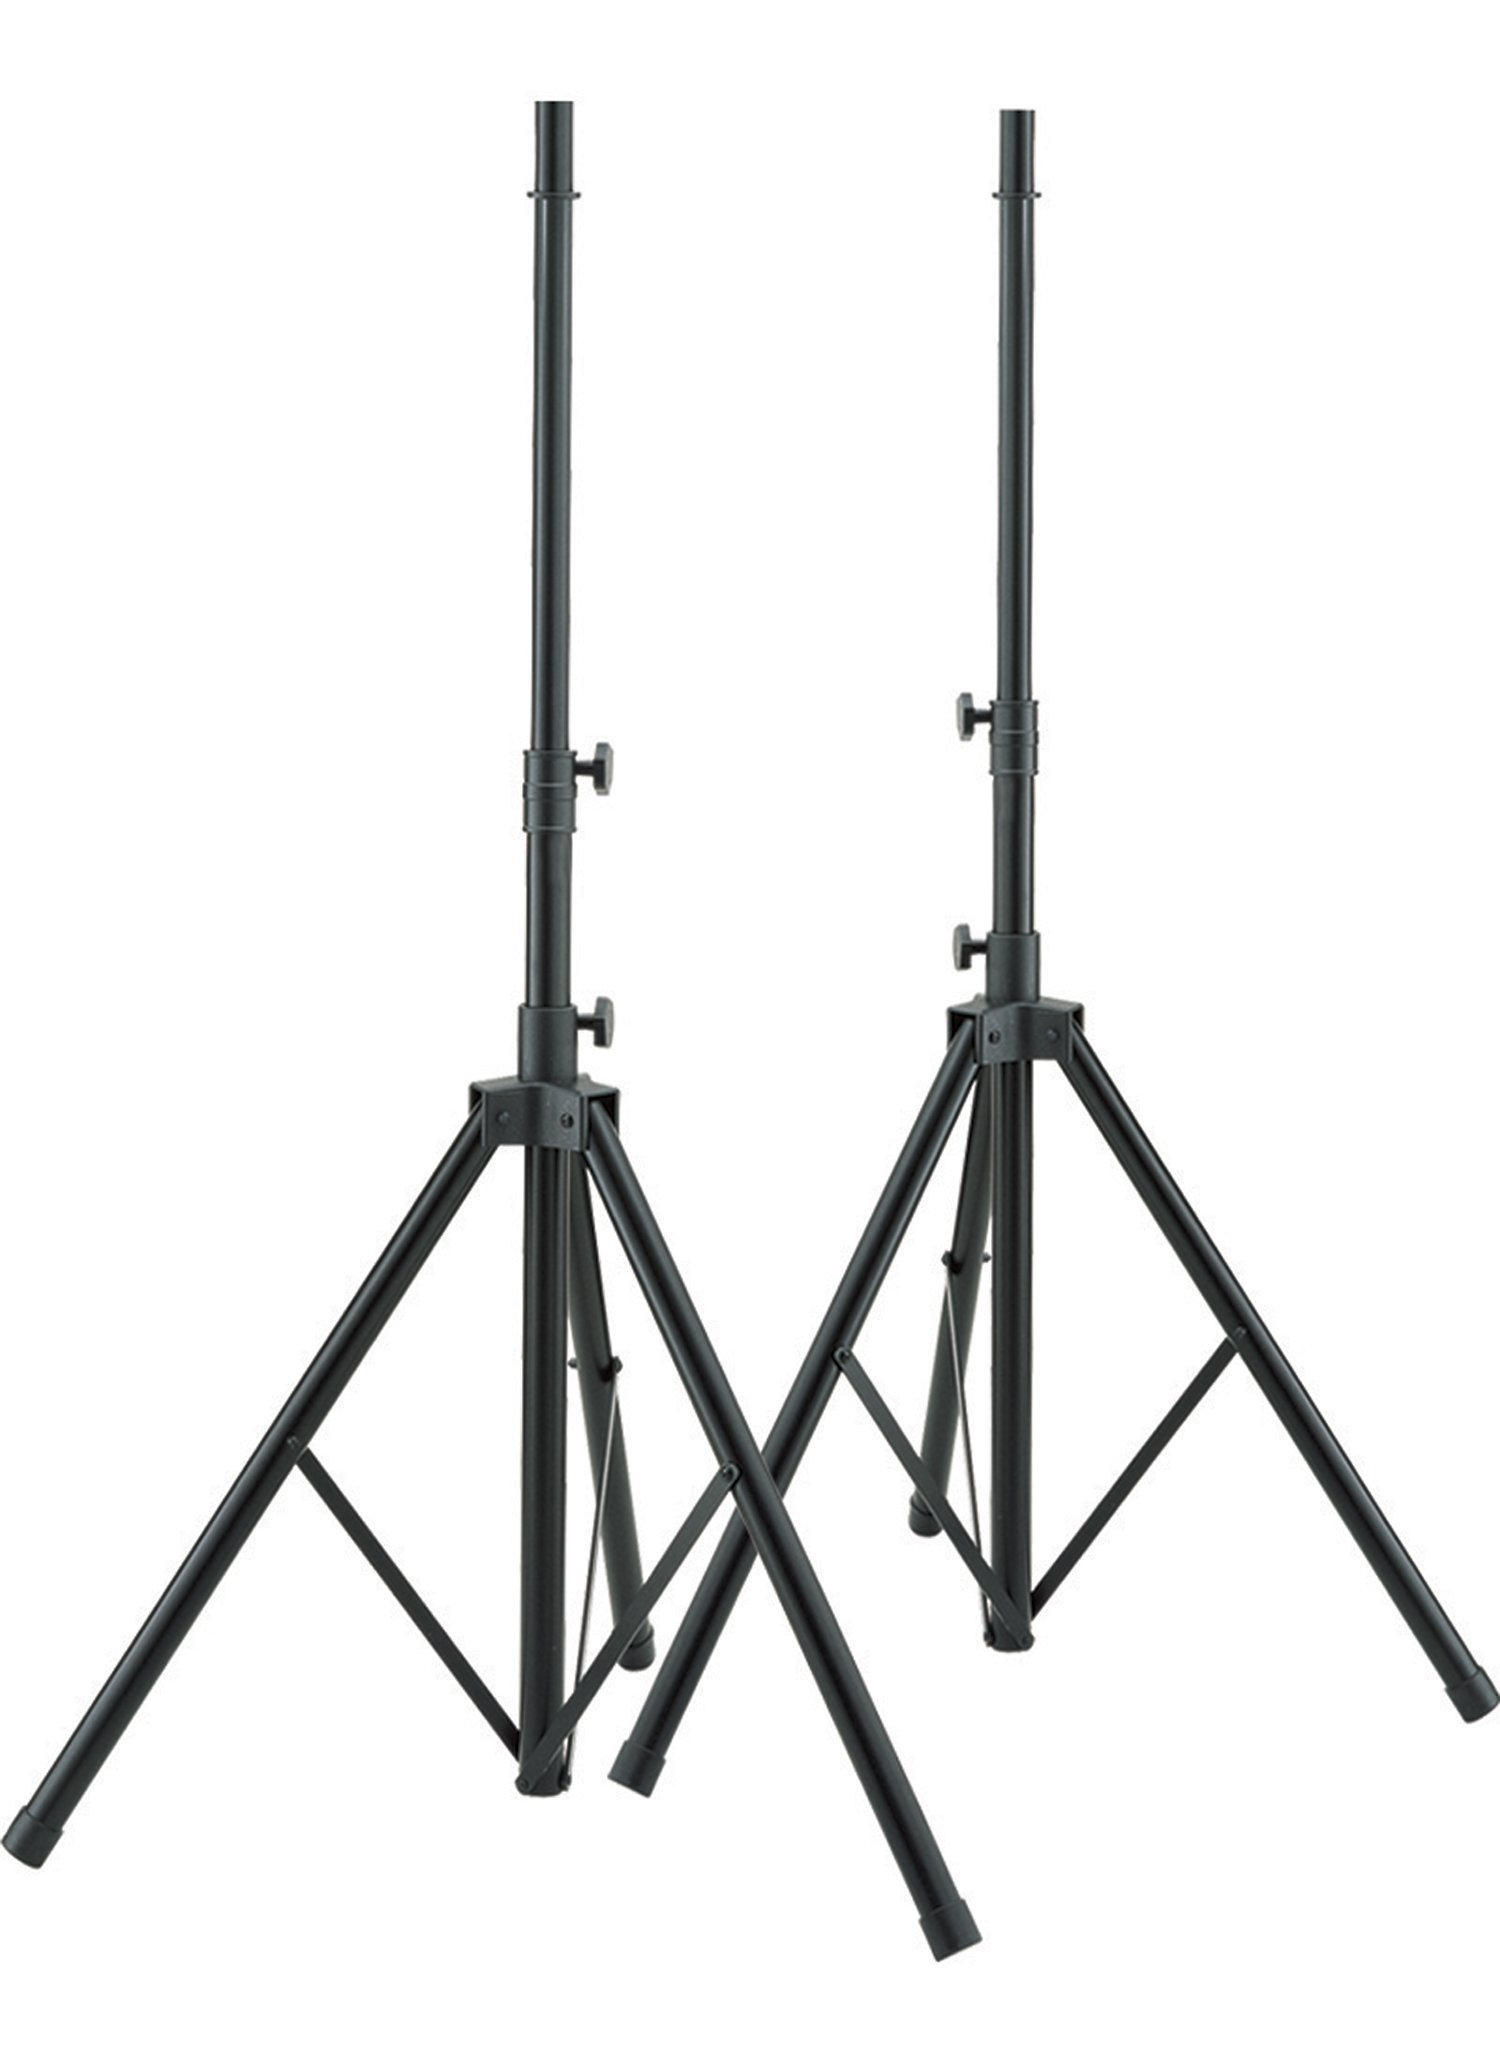 Stage Rocker Powered by Hamilton SR7507002 Aluminum Speaker Stand with Adapter - Black - 2 Pieces